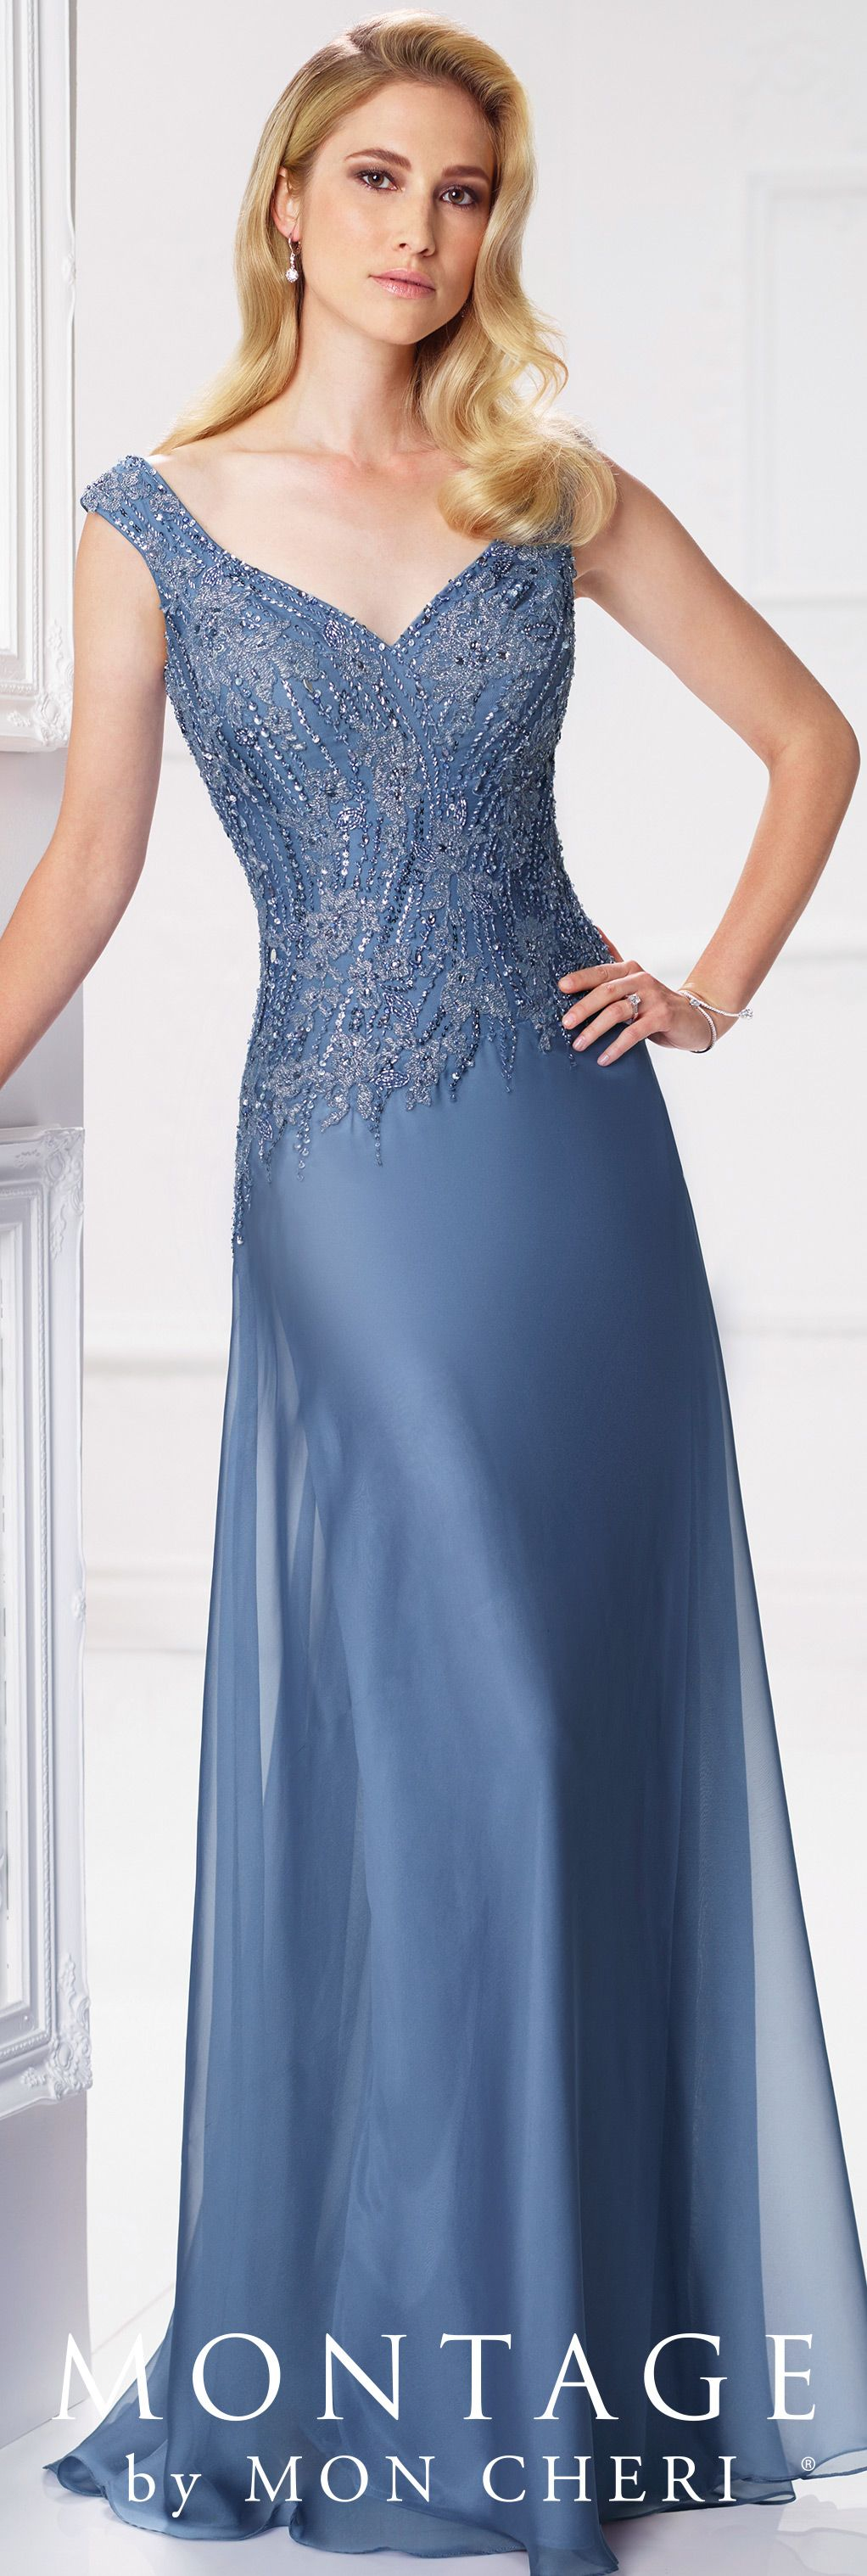 44be8845f3c2 Formal Evening Gowns by Mon Cheri - Spring 2017 - Style No. 117903 -  wedgwood blue chiffon and beaded lace evening dress